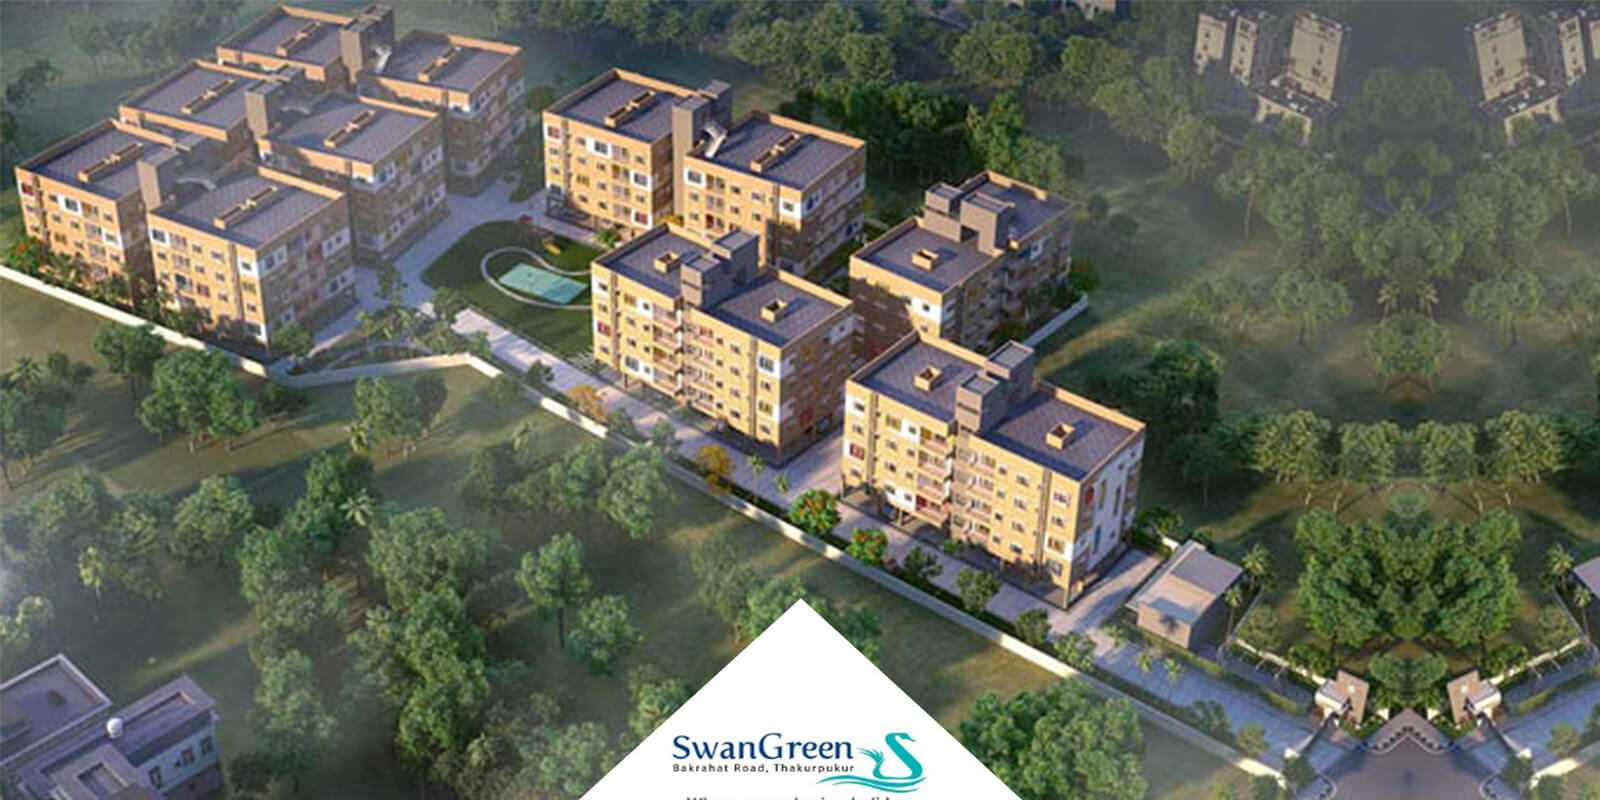 emami swan green project large image1